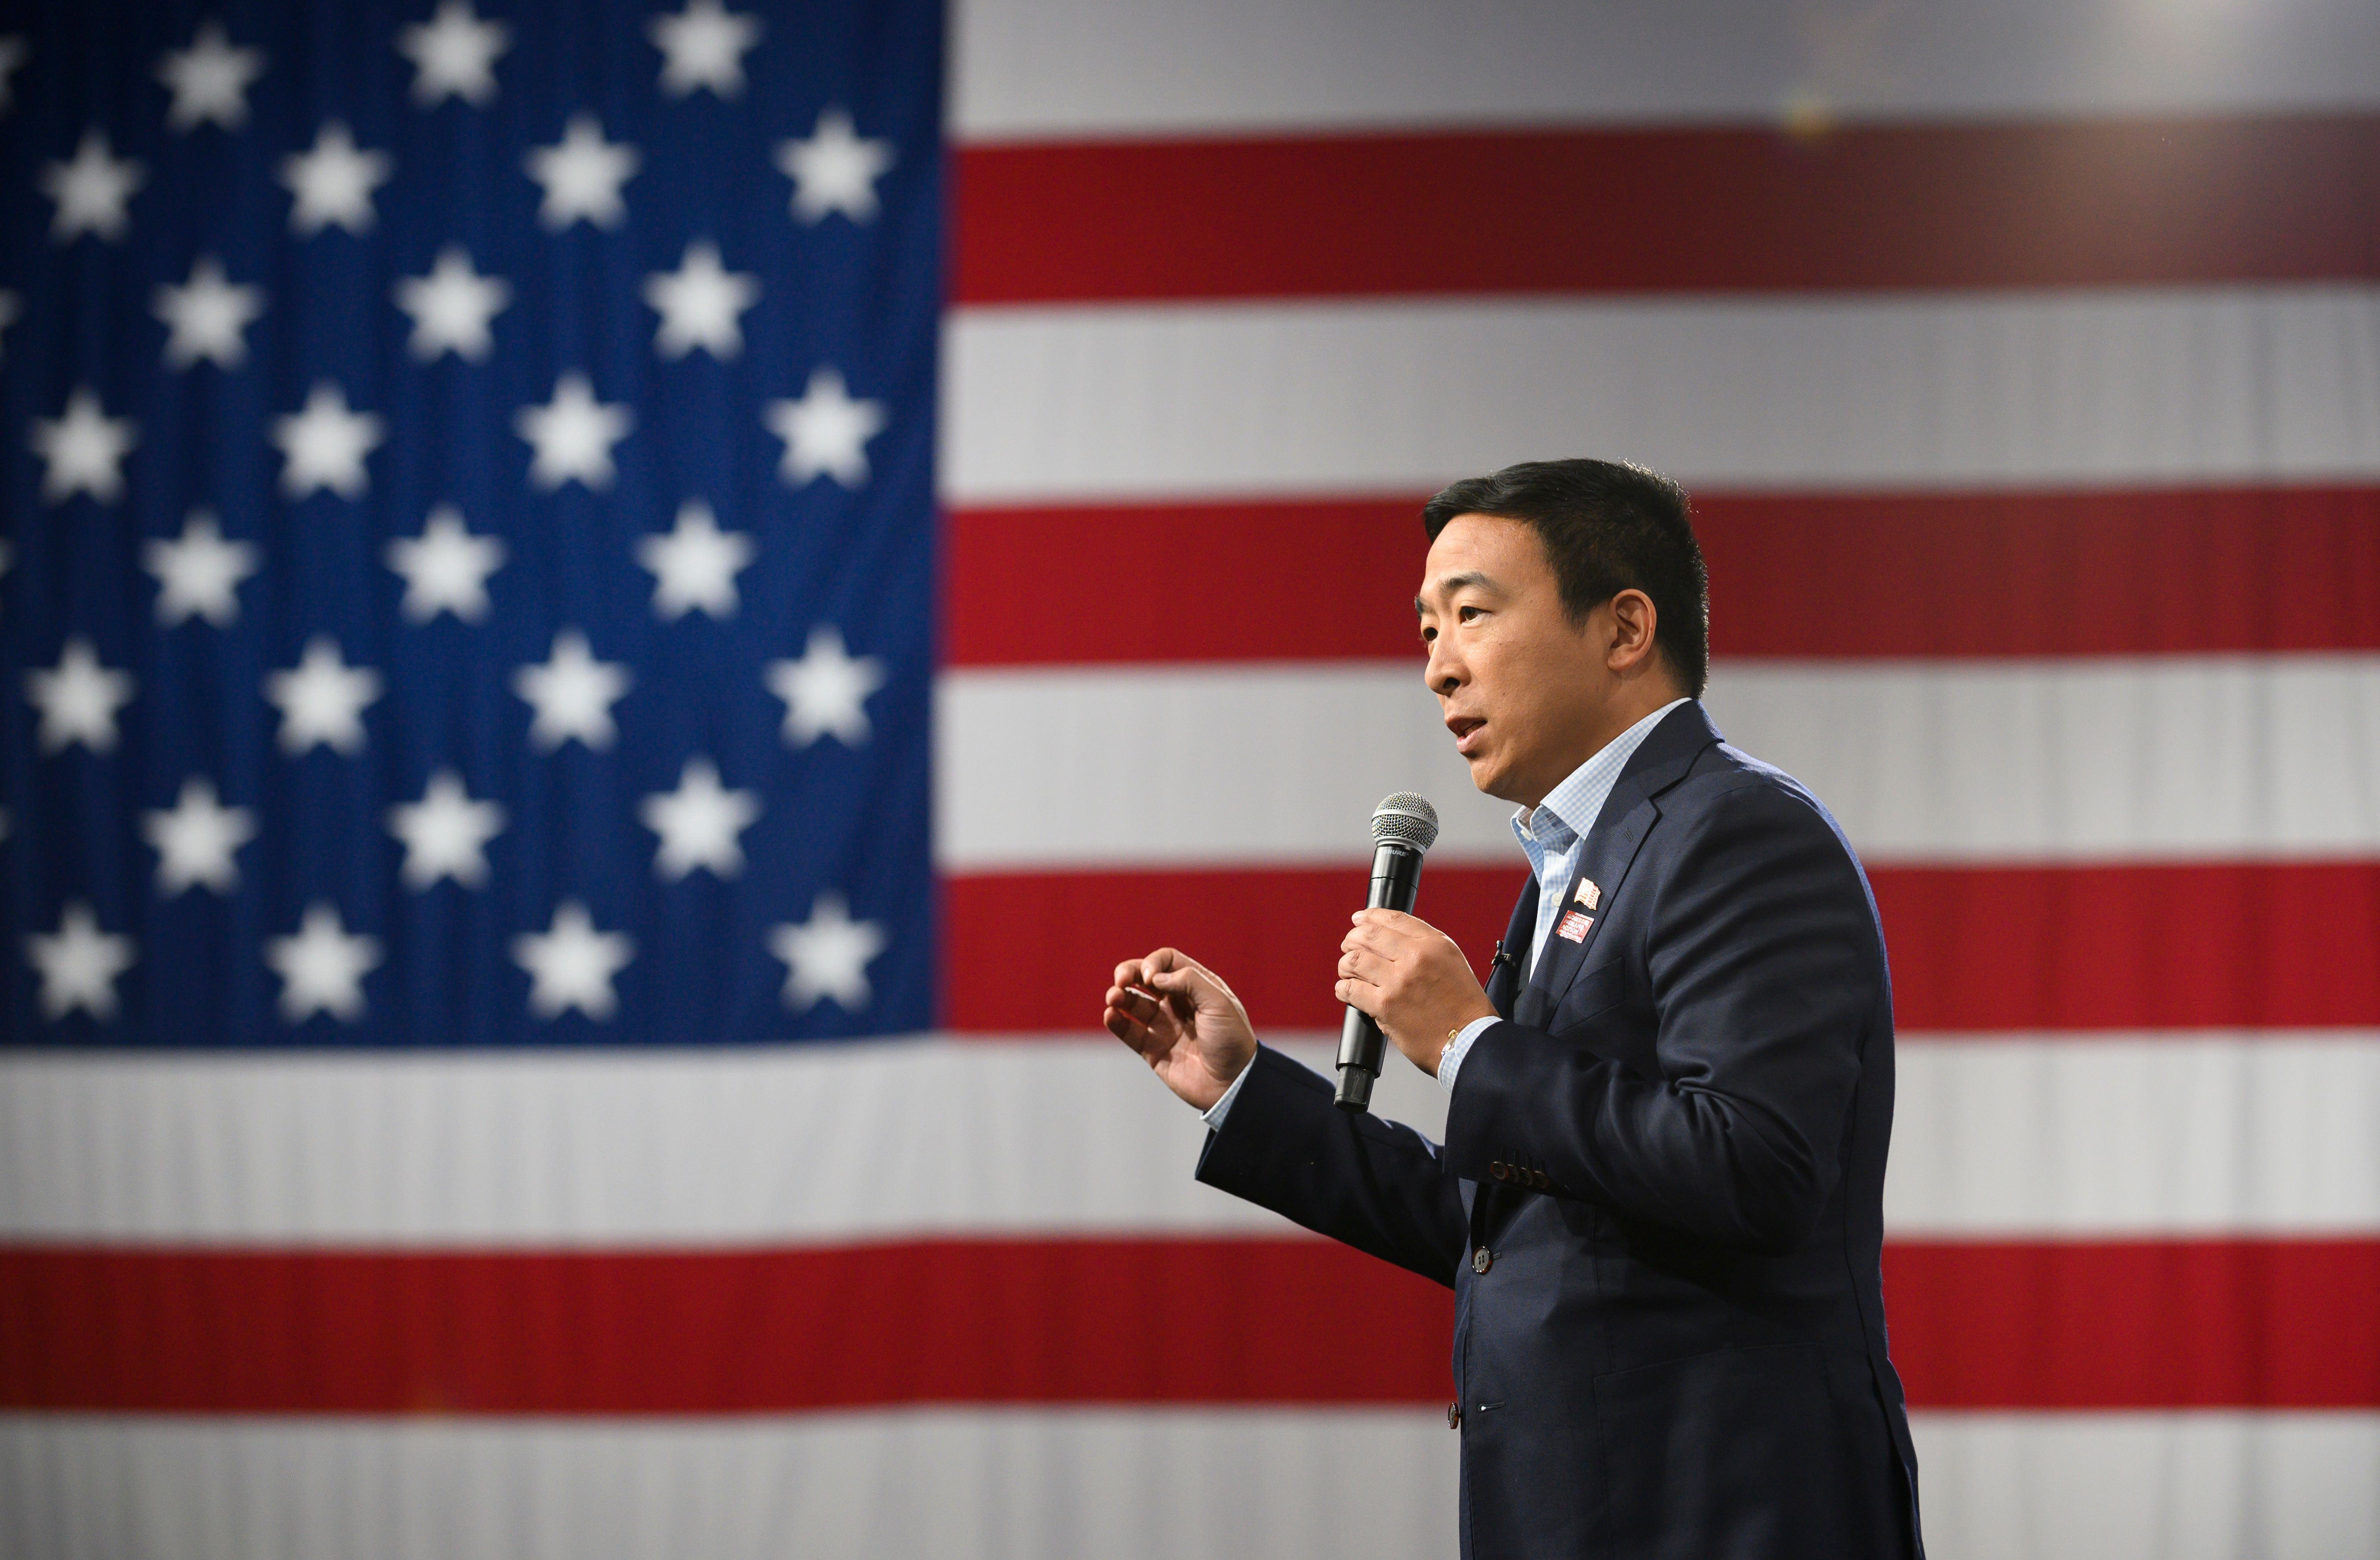 Andrew Yang speaking in front of an American flag